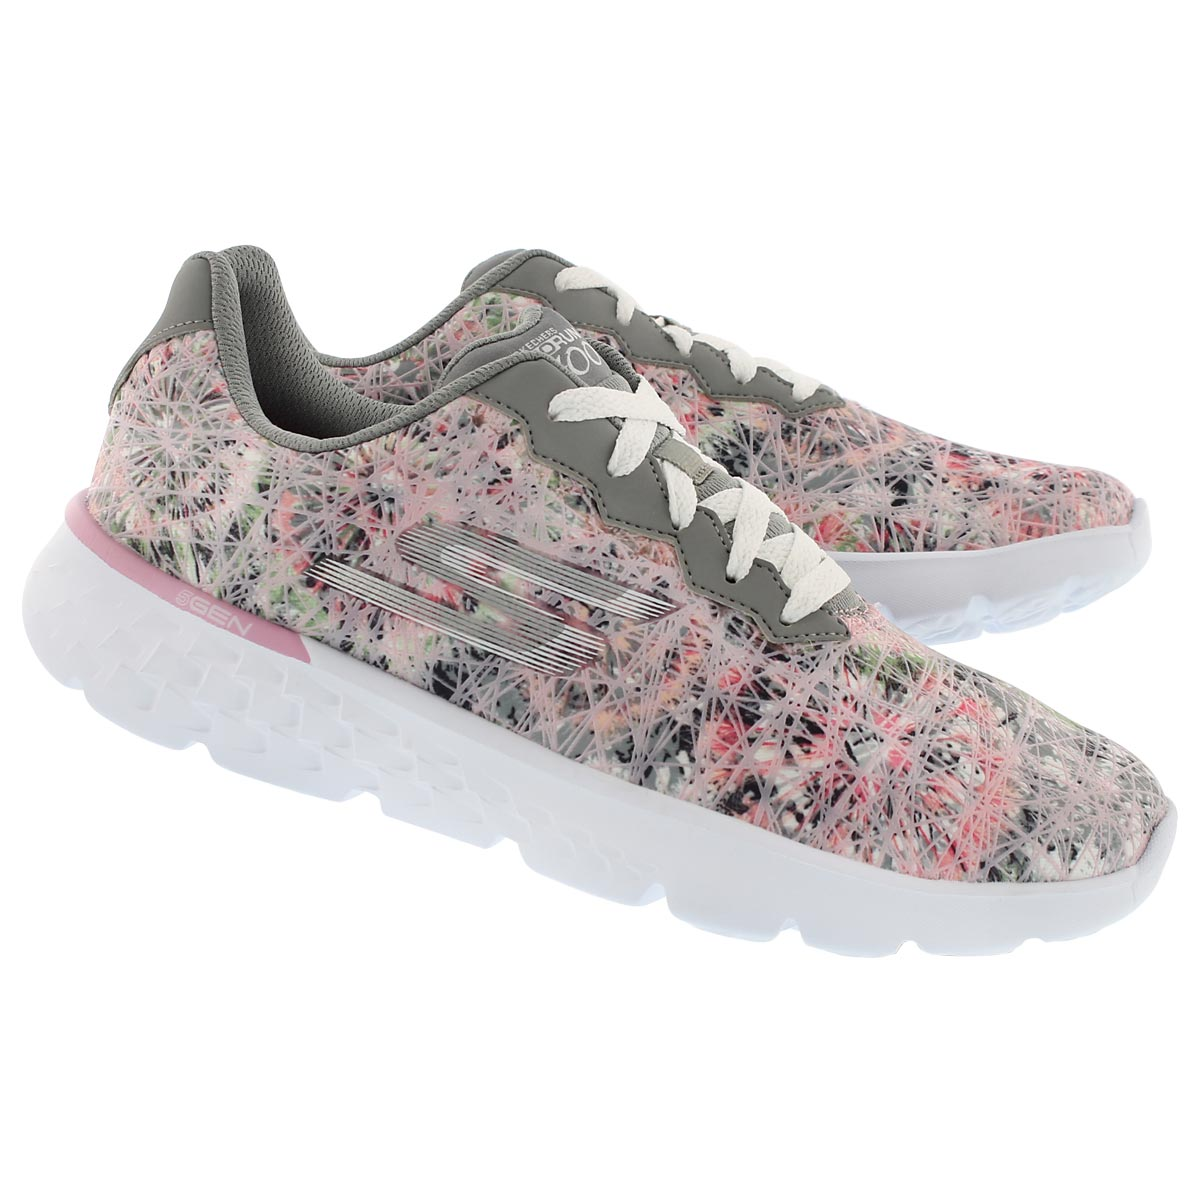 Lds GO Run 400 grey printed running shoe